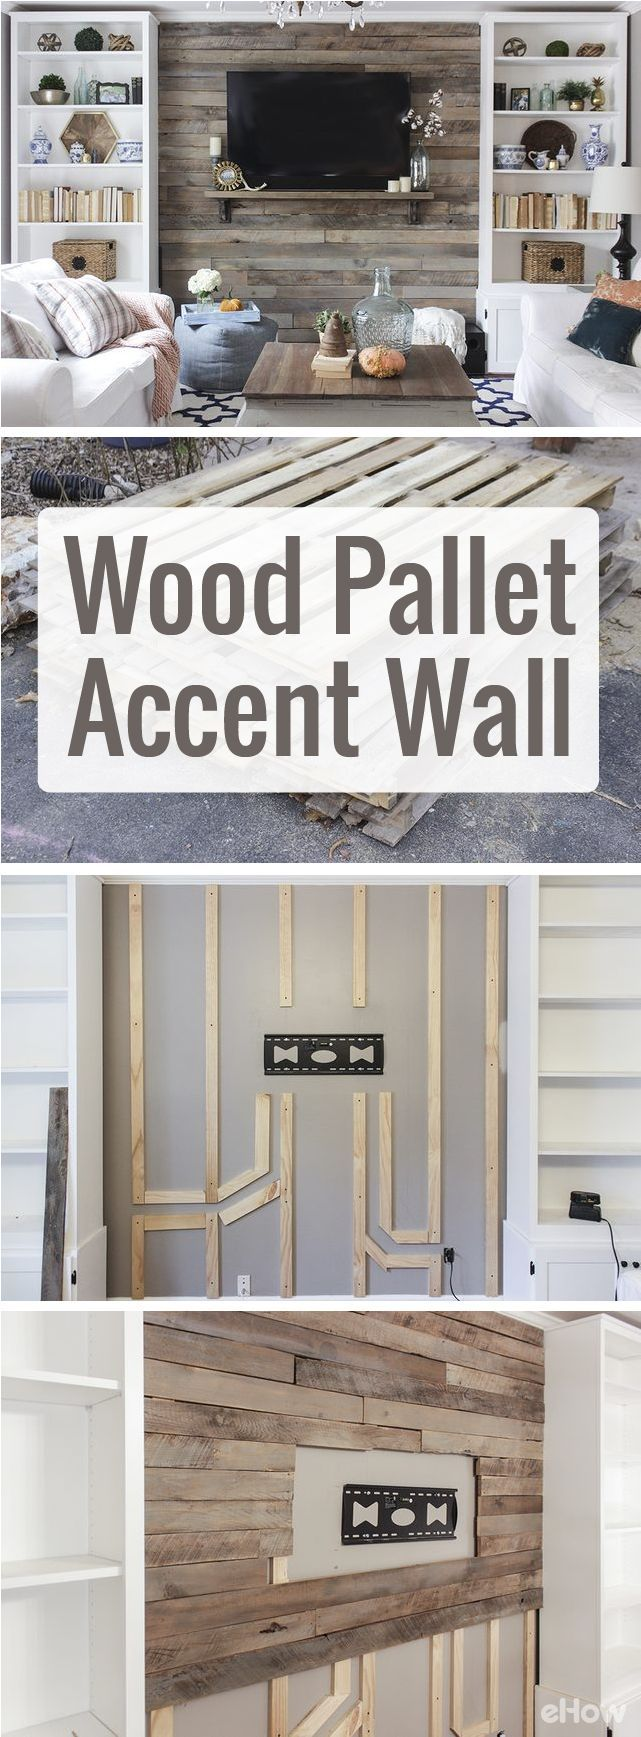 Drastically change the look and feel of your living room with a beautiful wood pallet accent wall. Using pallets makes this home makeover so inexpensive and easy to DIY!